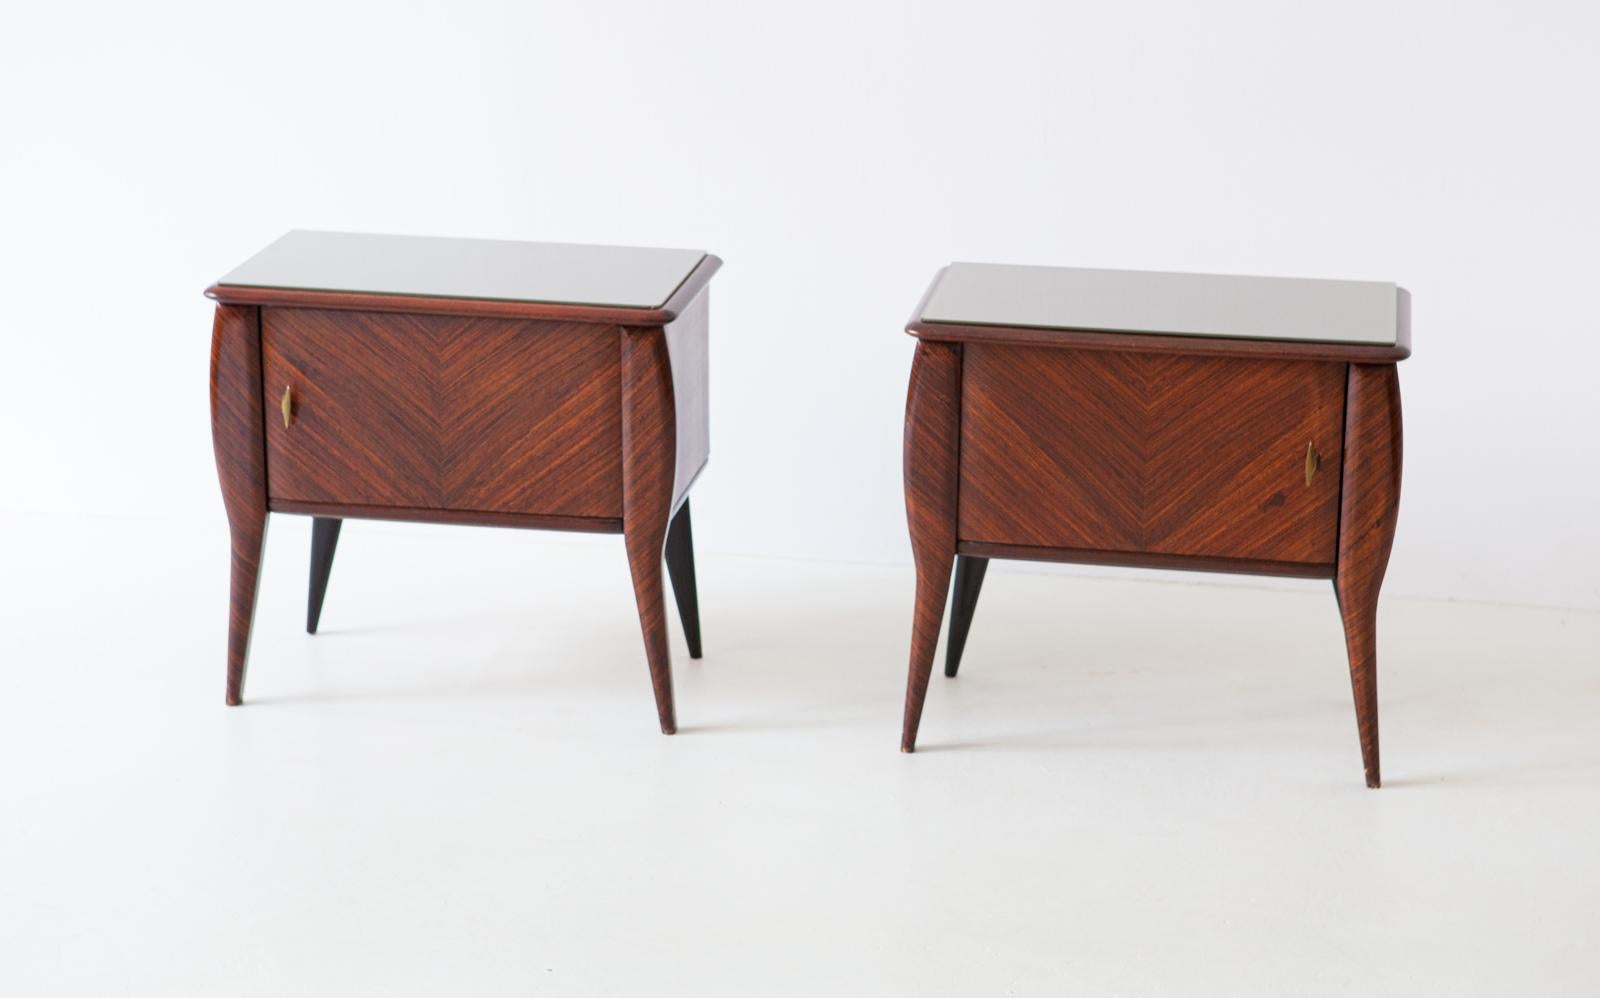 Pair Of Italian Rosewood Bedside Tables With Grey Glass Top 1950s